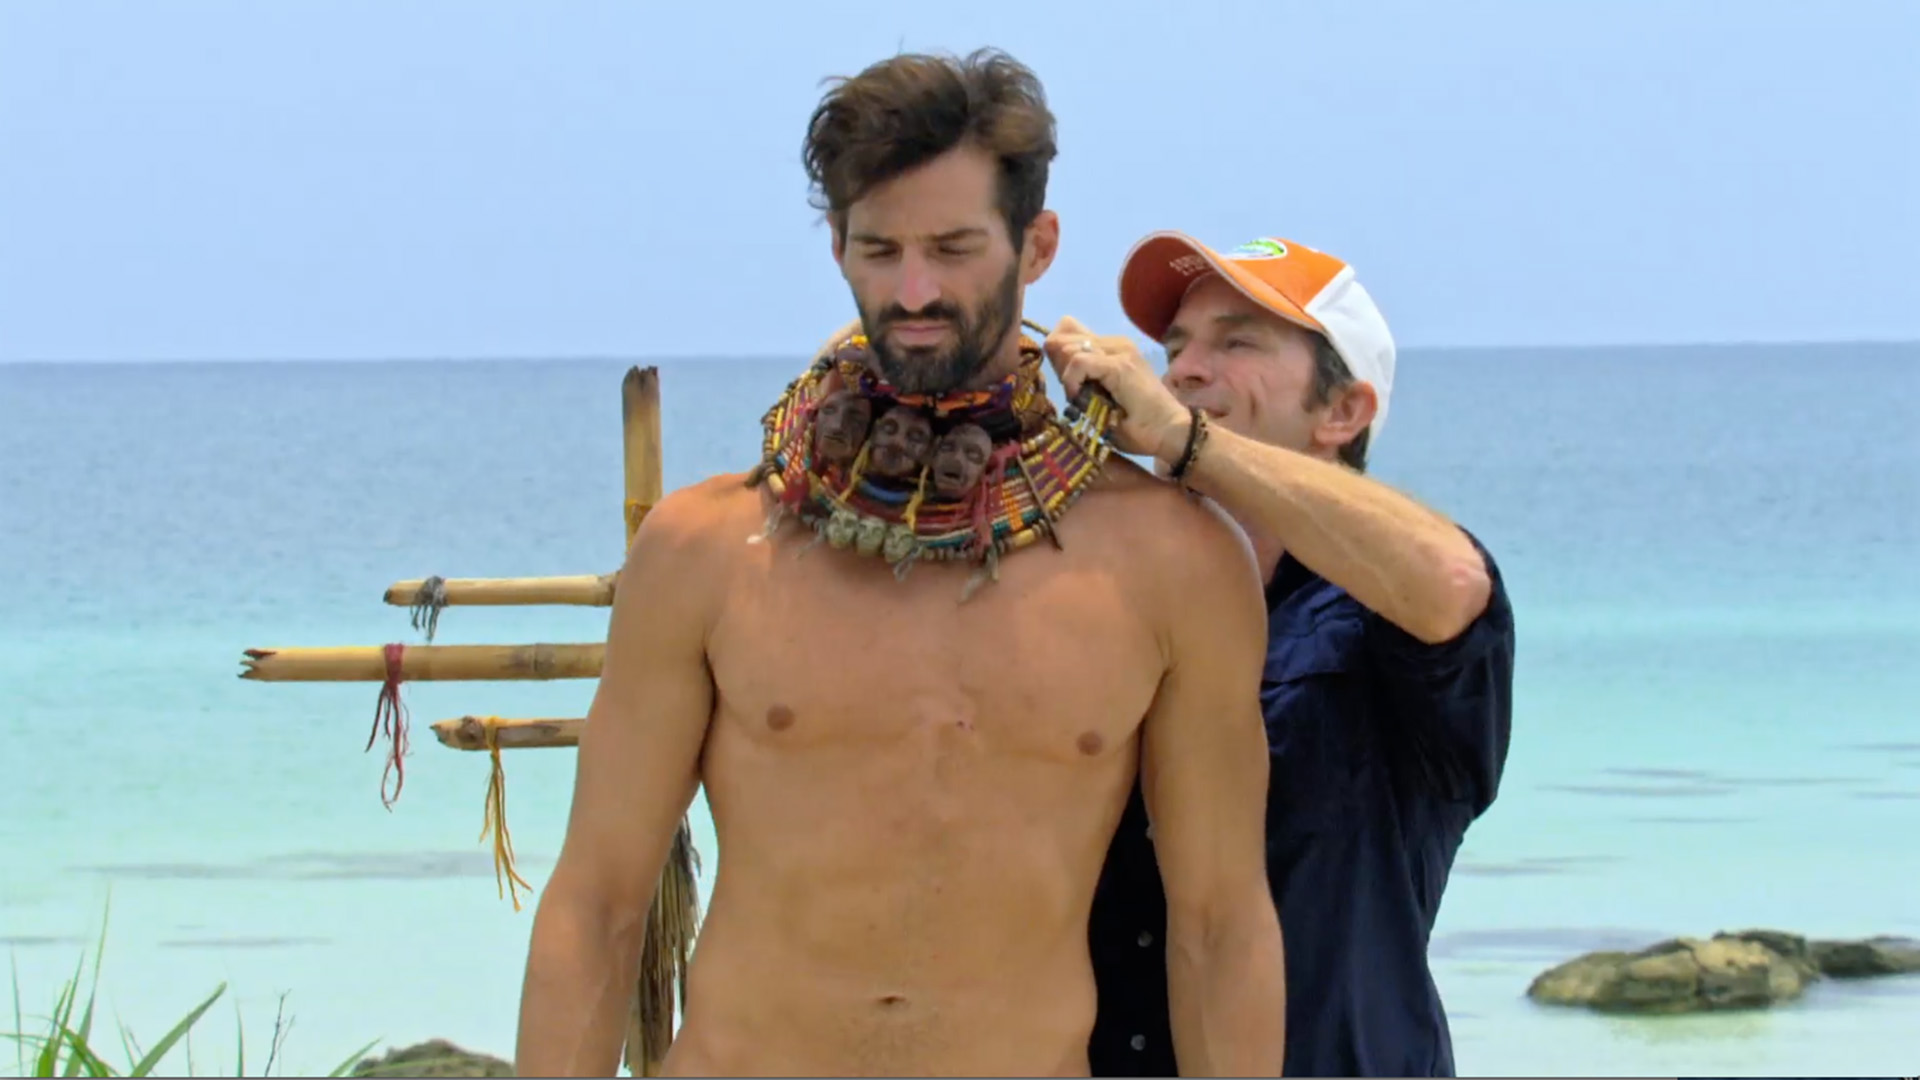 6. The first Individual Immunity Challenge gives one castaway complete safety.